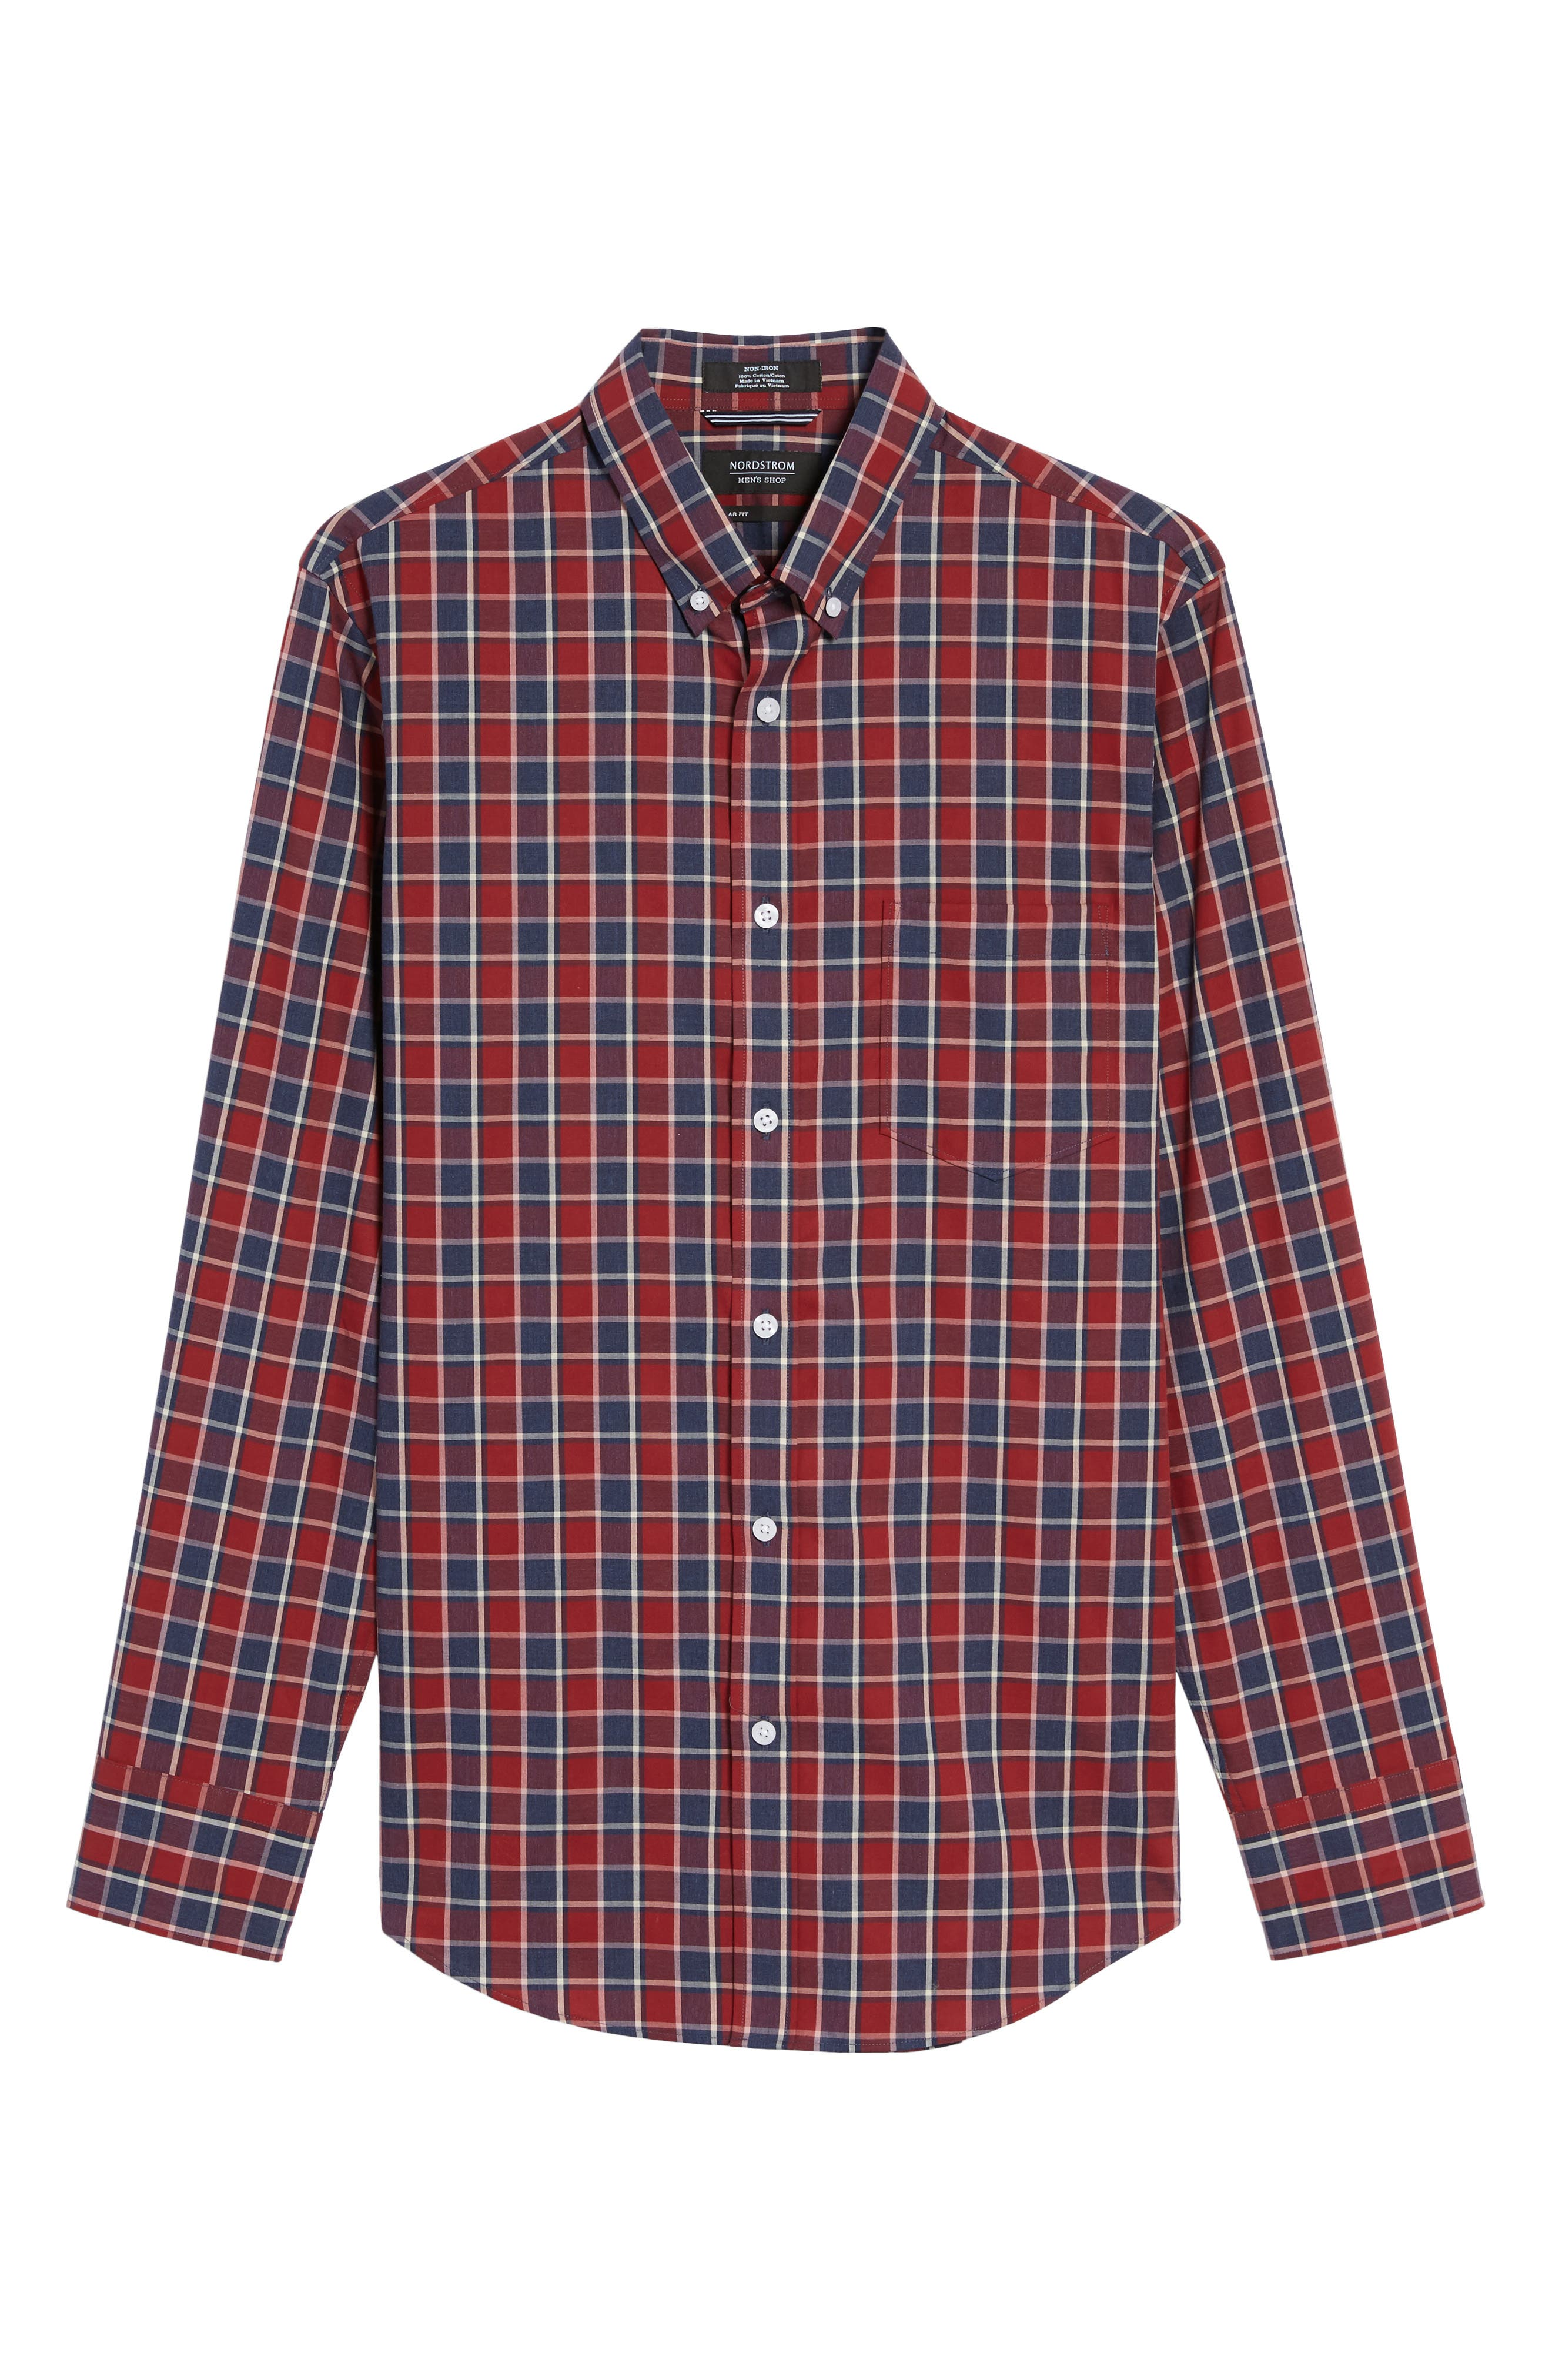 Non-Iron Check Sport Shirt,                             Alternate thumbnail 6, color,                             Red Ruby Heathered Check